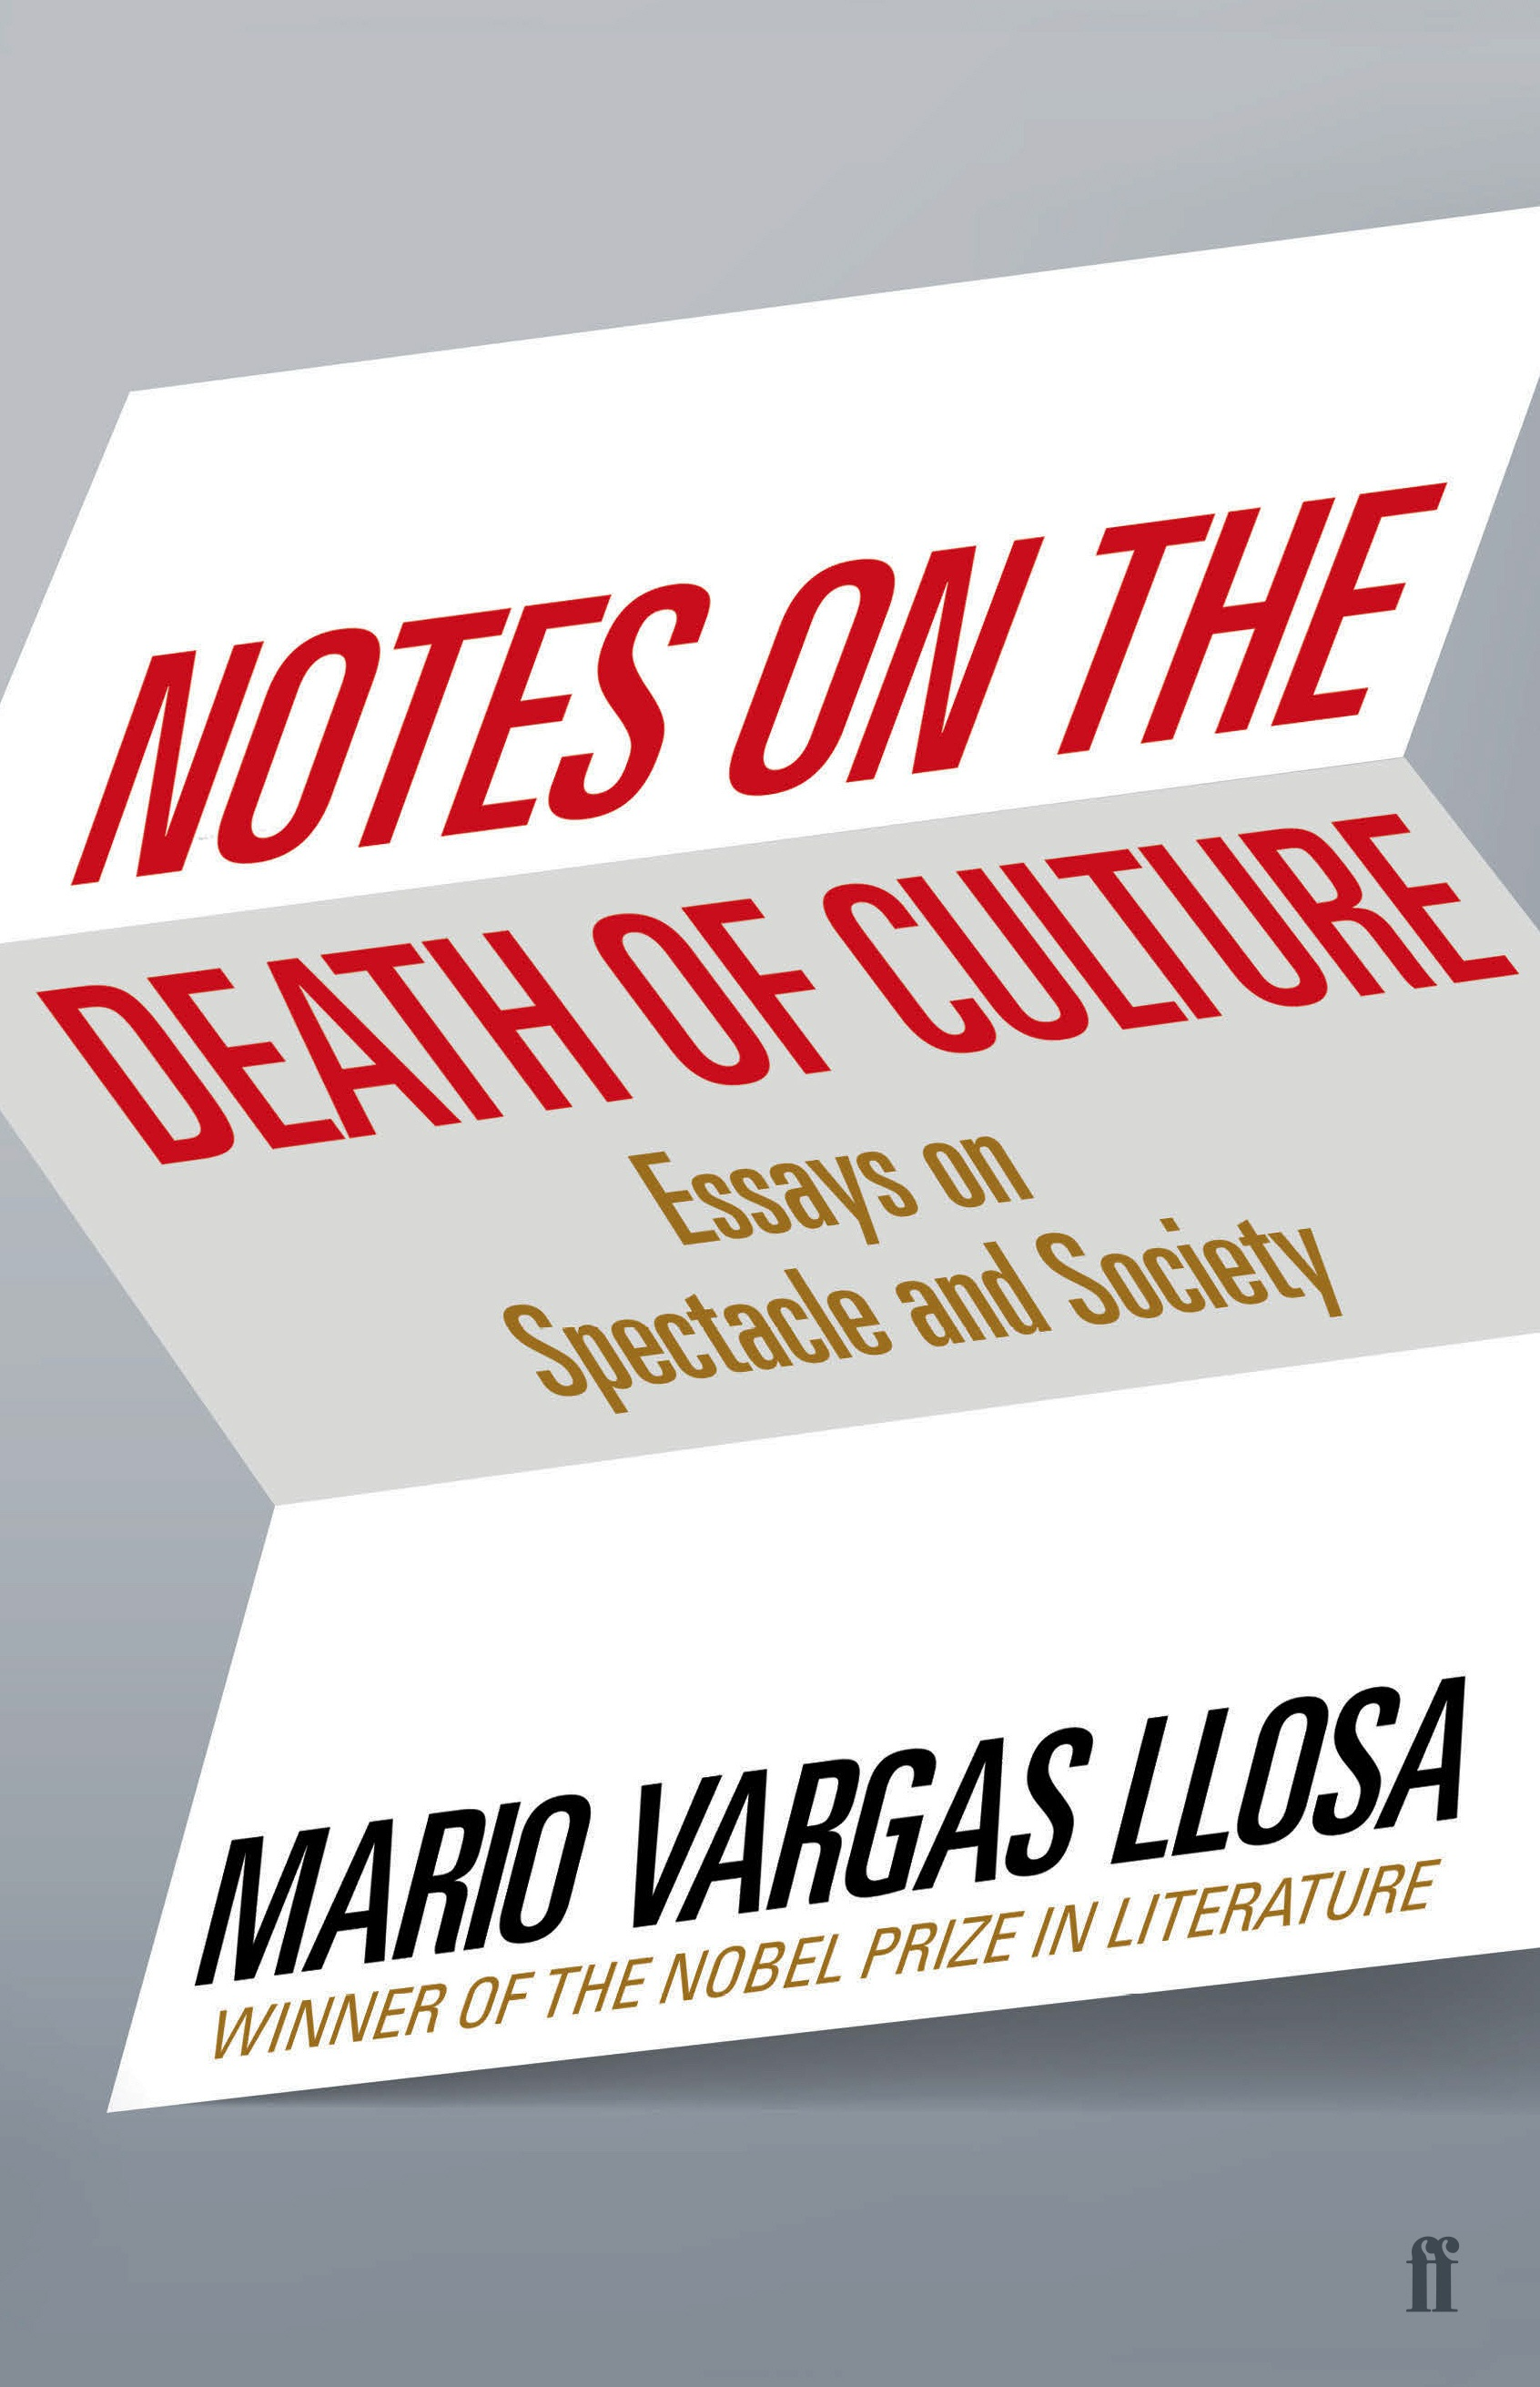 notes on the death of culture mario vargas llosa translated by cover the new essay collection by the nobel prize winning